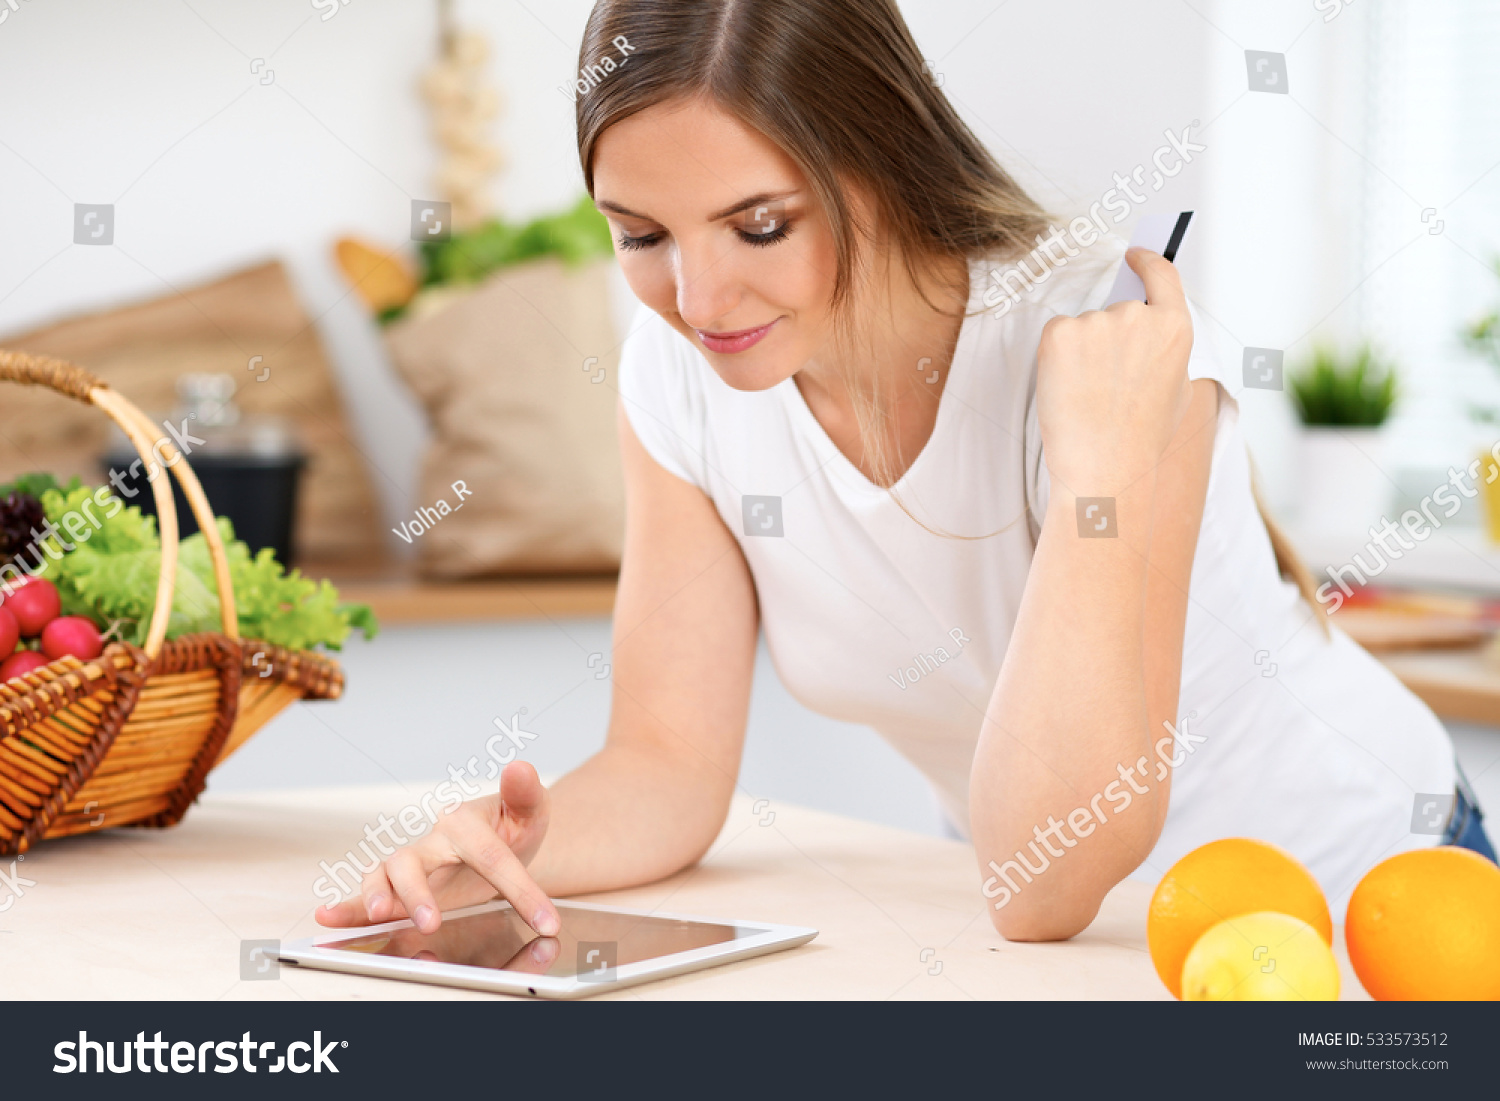 young woman making online shopping by stock photo royalty free